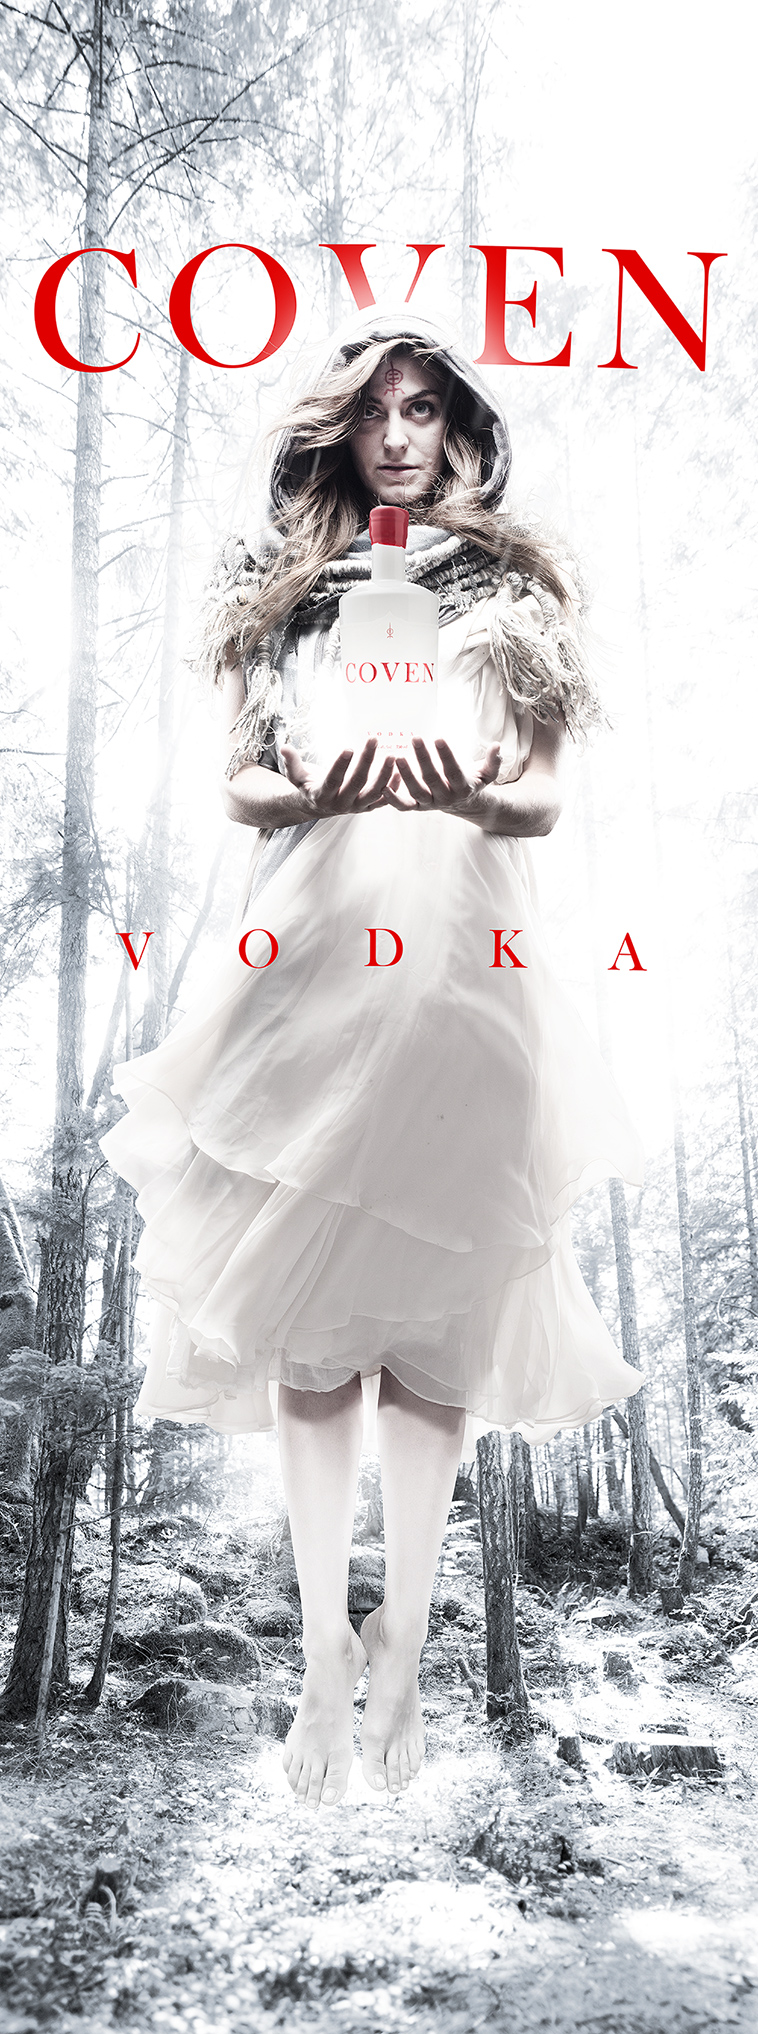 Poster for Arbutus Distillery's Coven Vodka